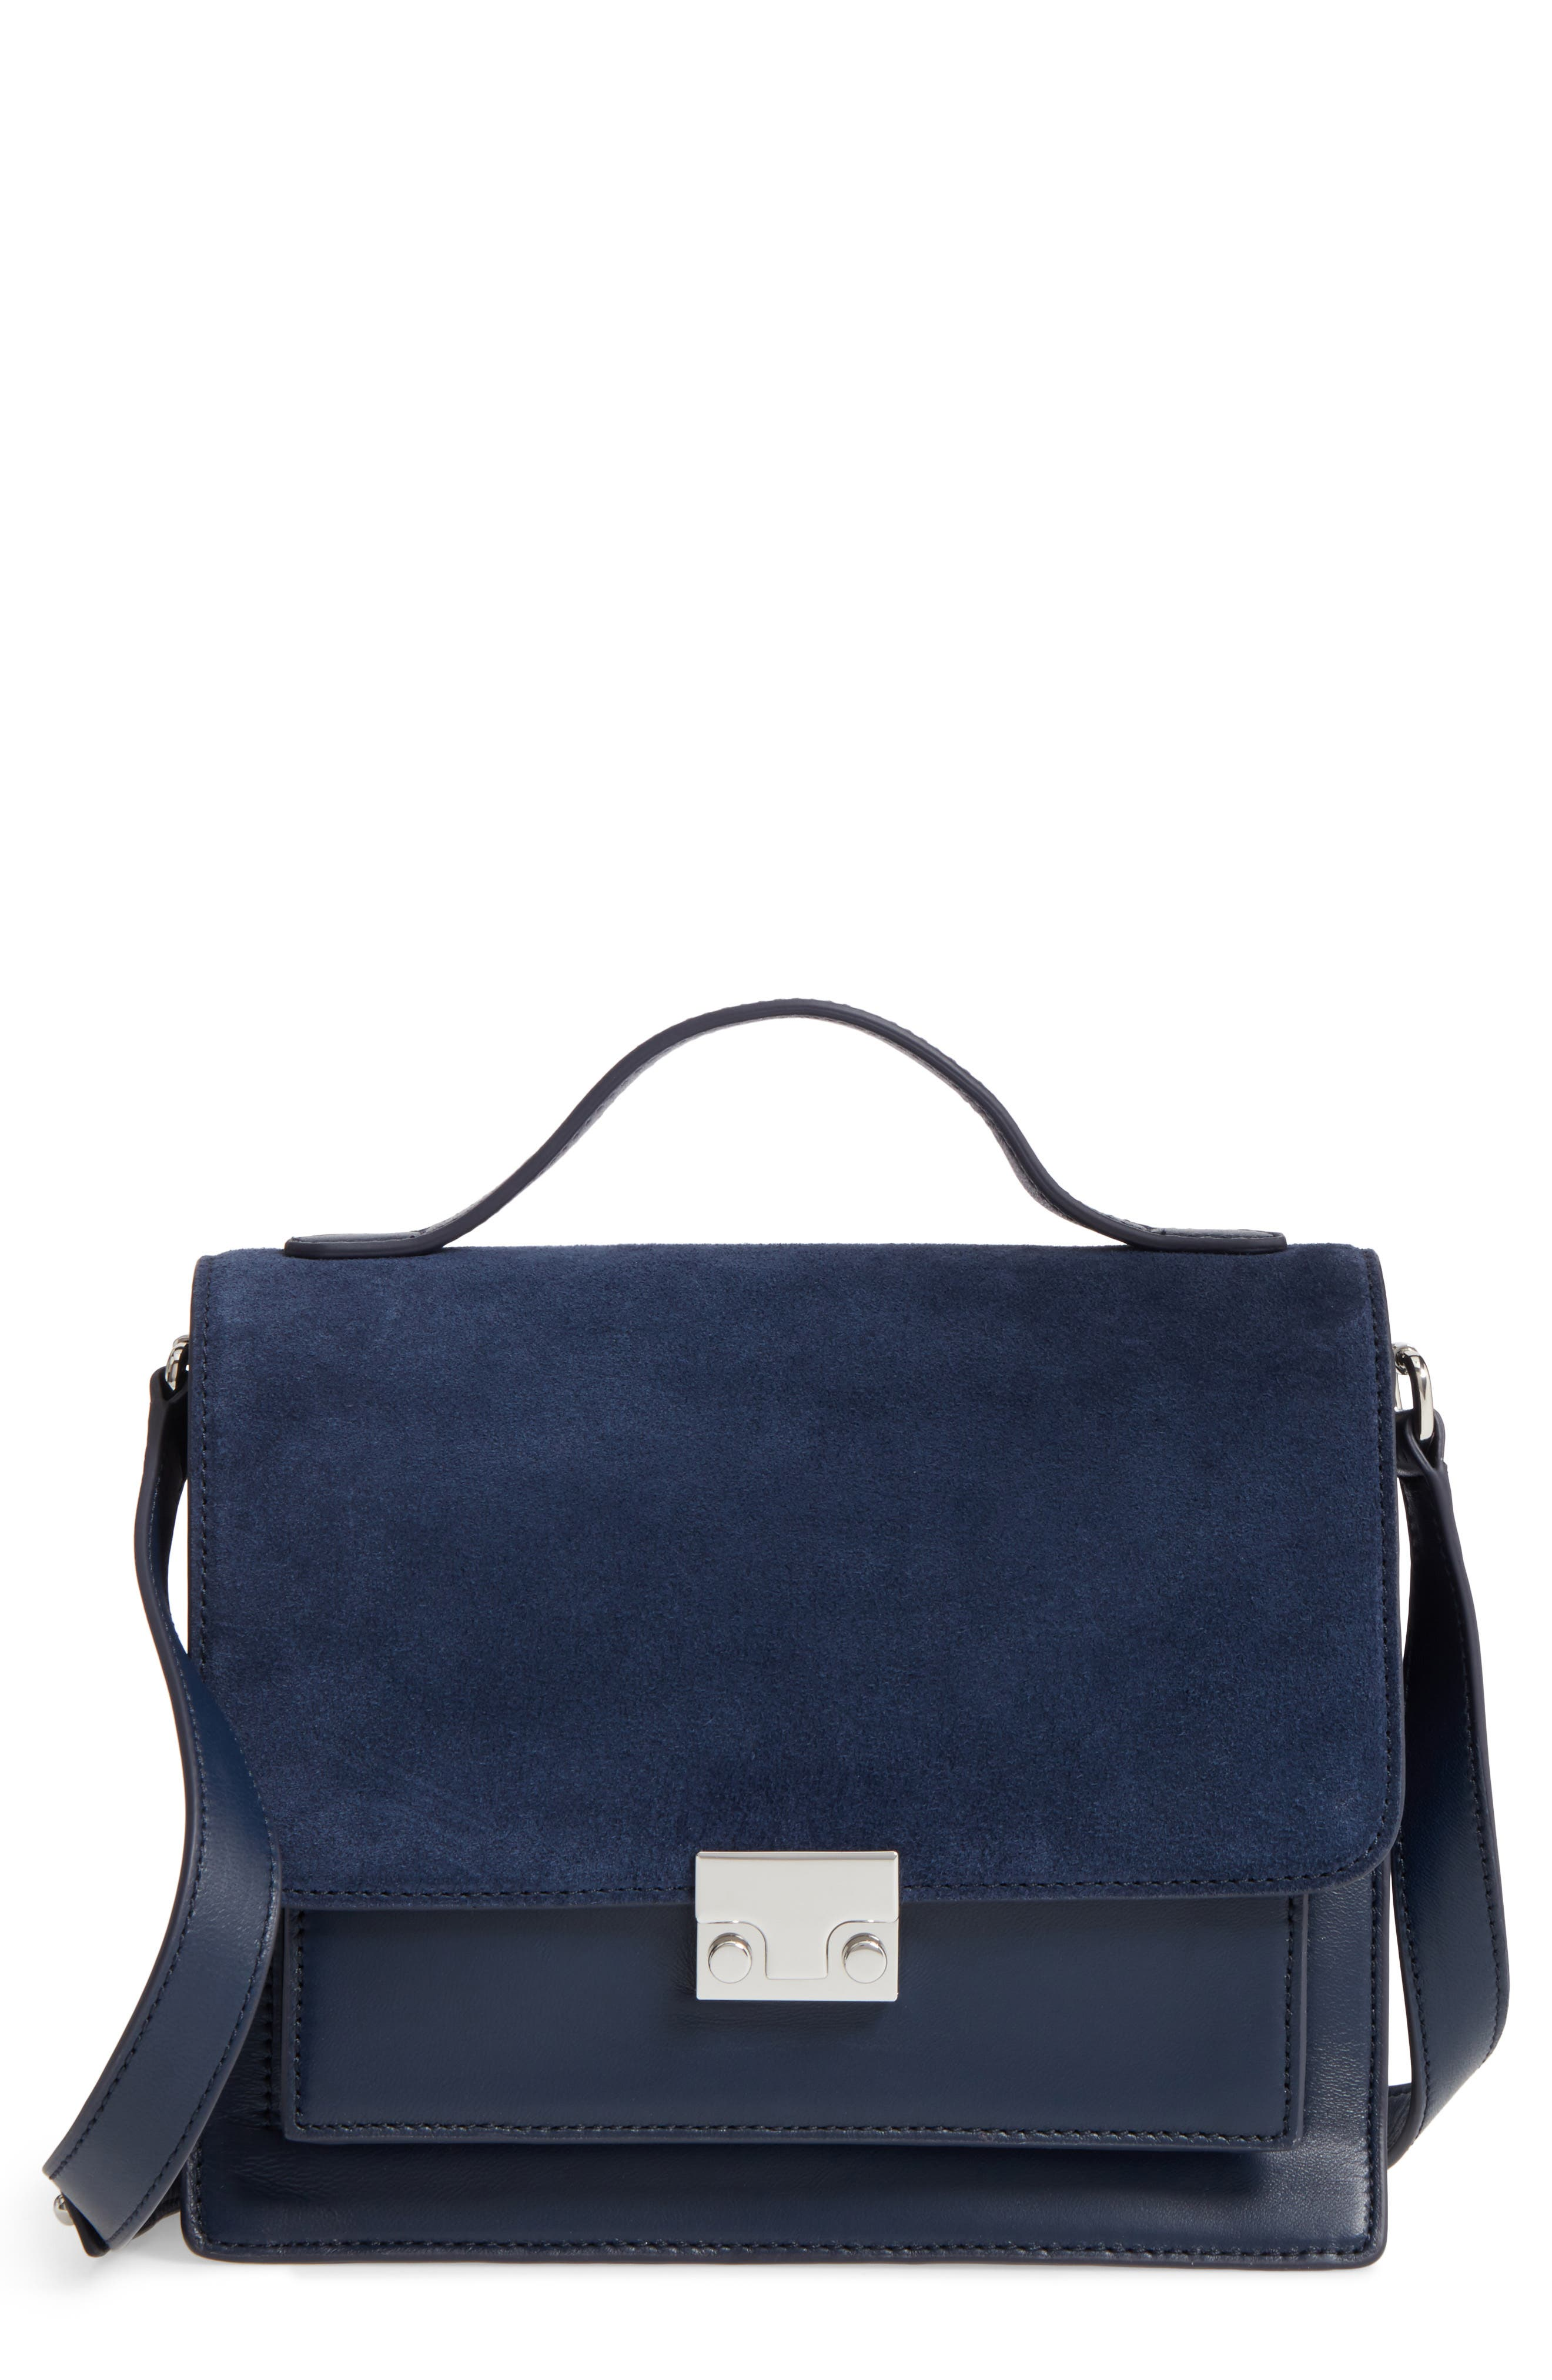 Alternate Image 1 Selected - Loeffler Randall Minimal Rider Satchel